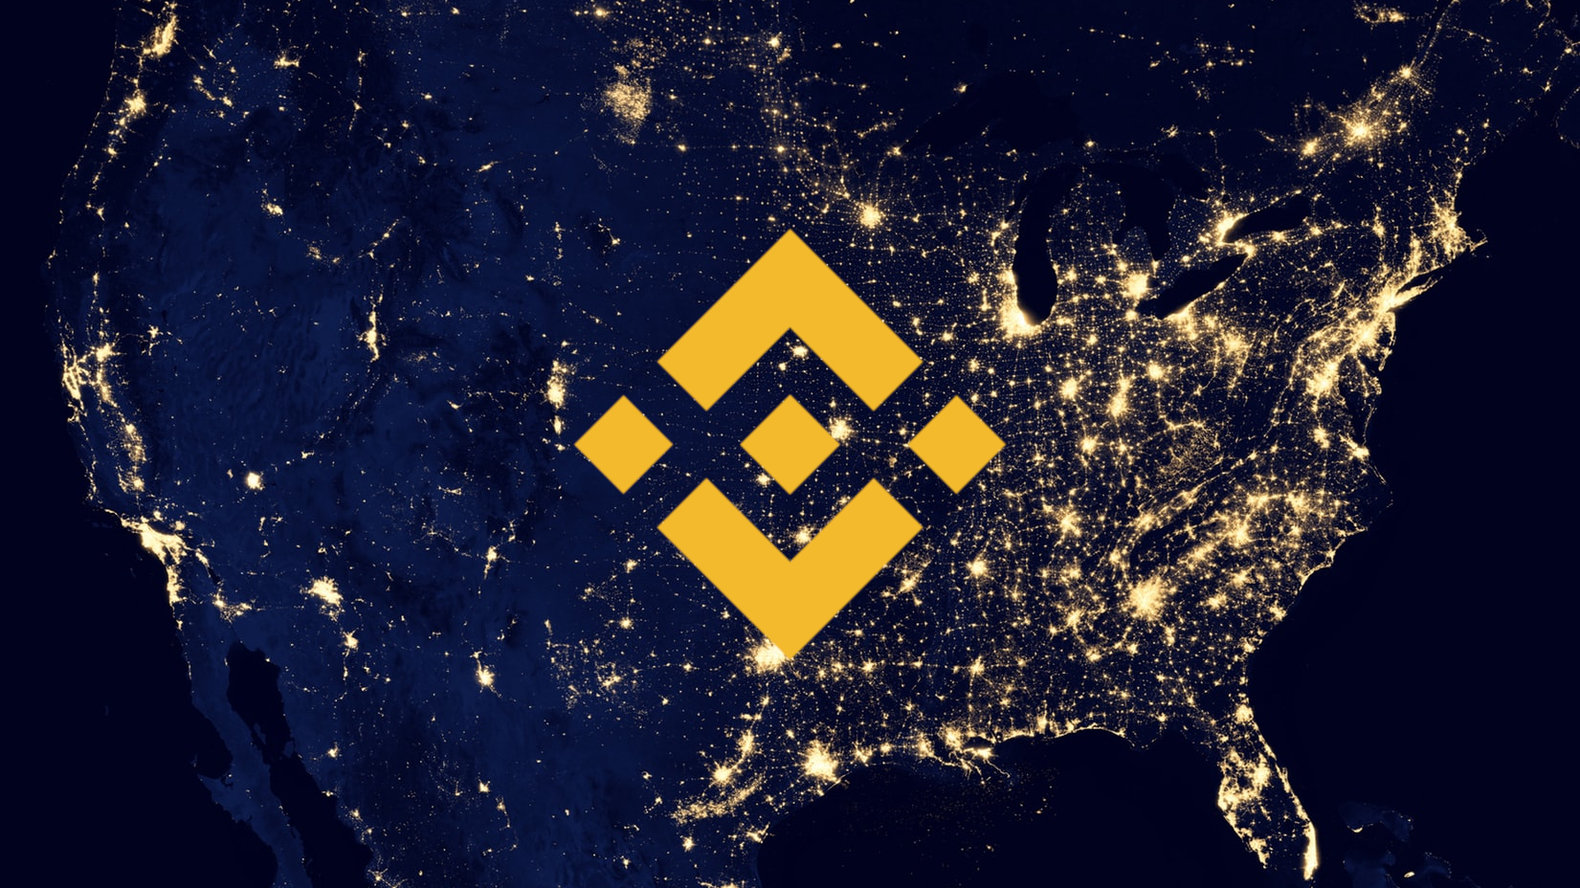 Binance US to Add Two New Coins ATOM and NEO